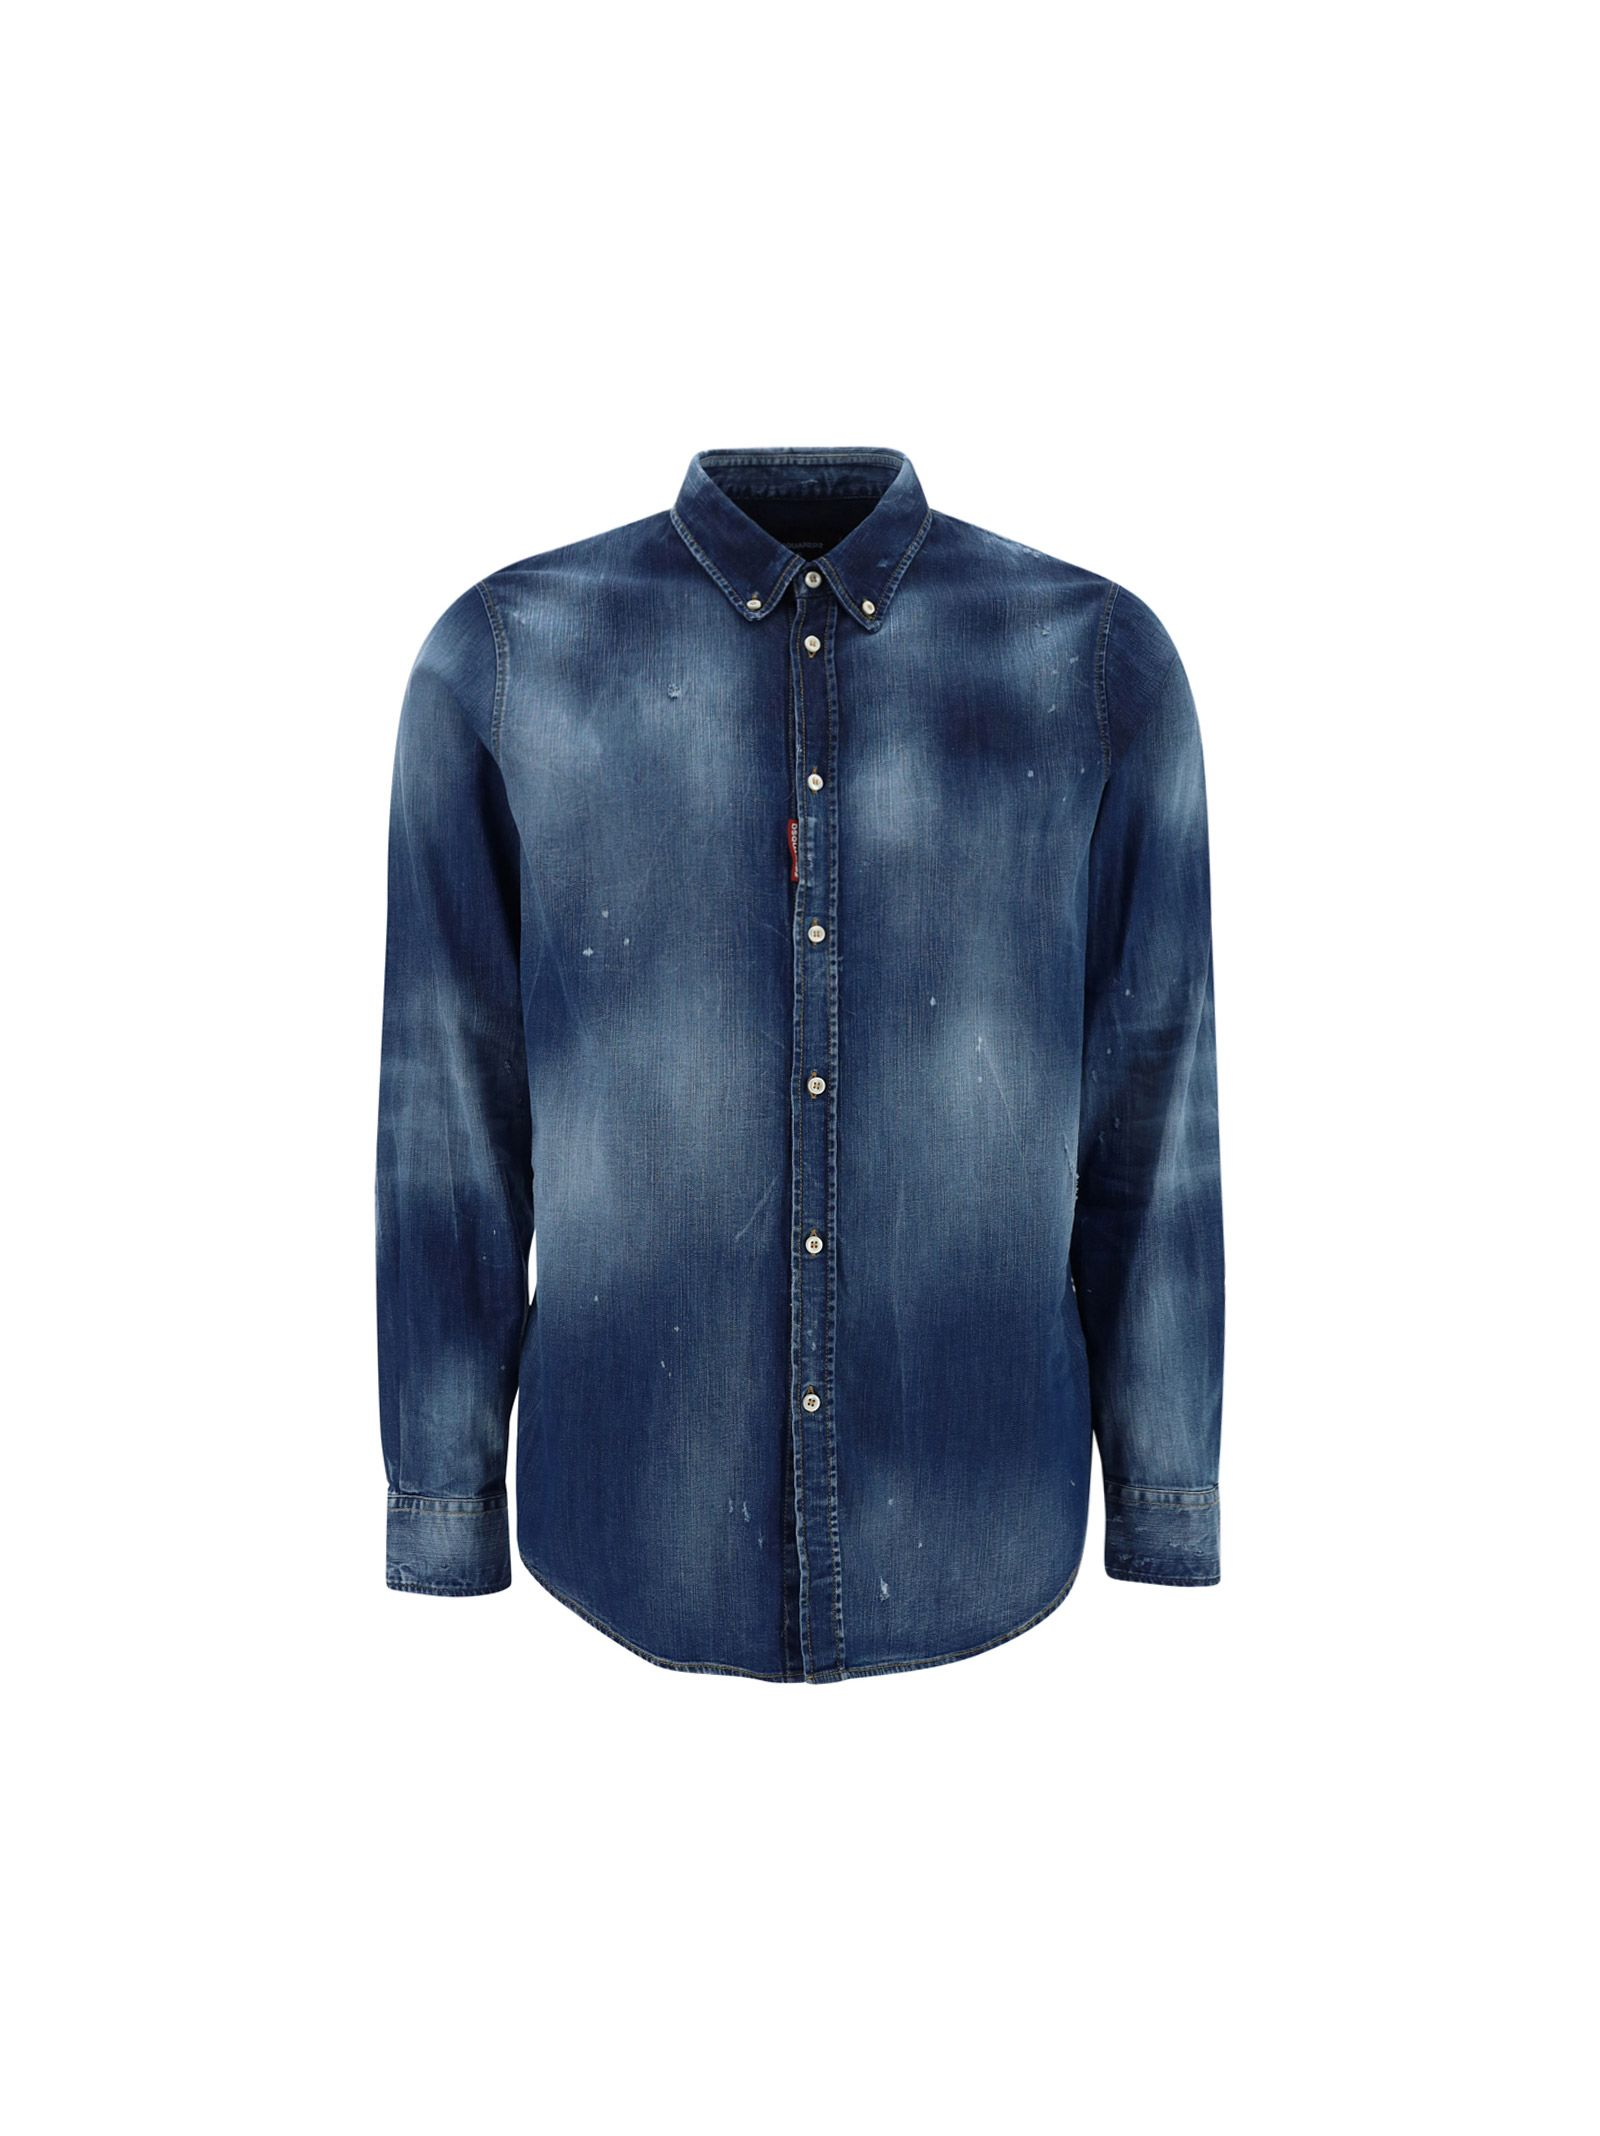 Dsquared2 DSQUARED2 MEN'S BLUE OTHER MATERIALS SHIRT